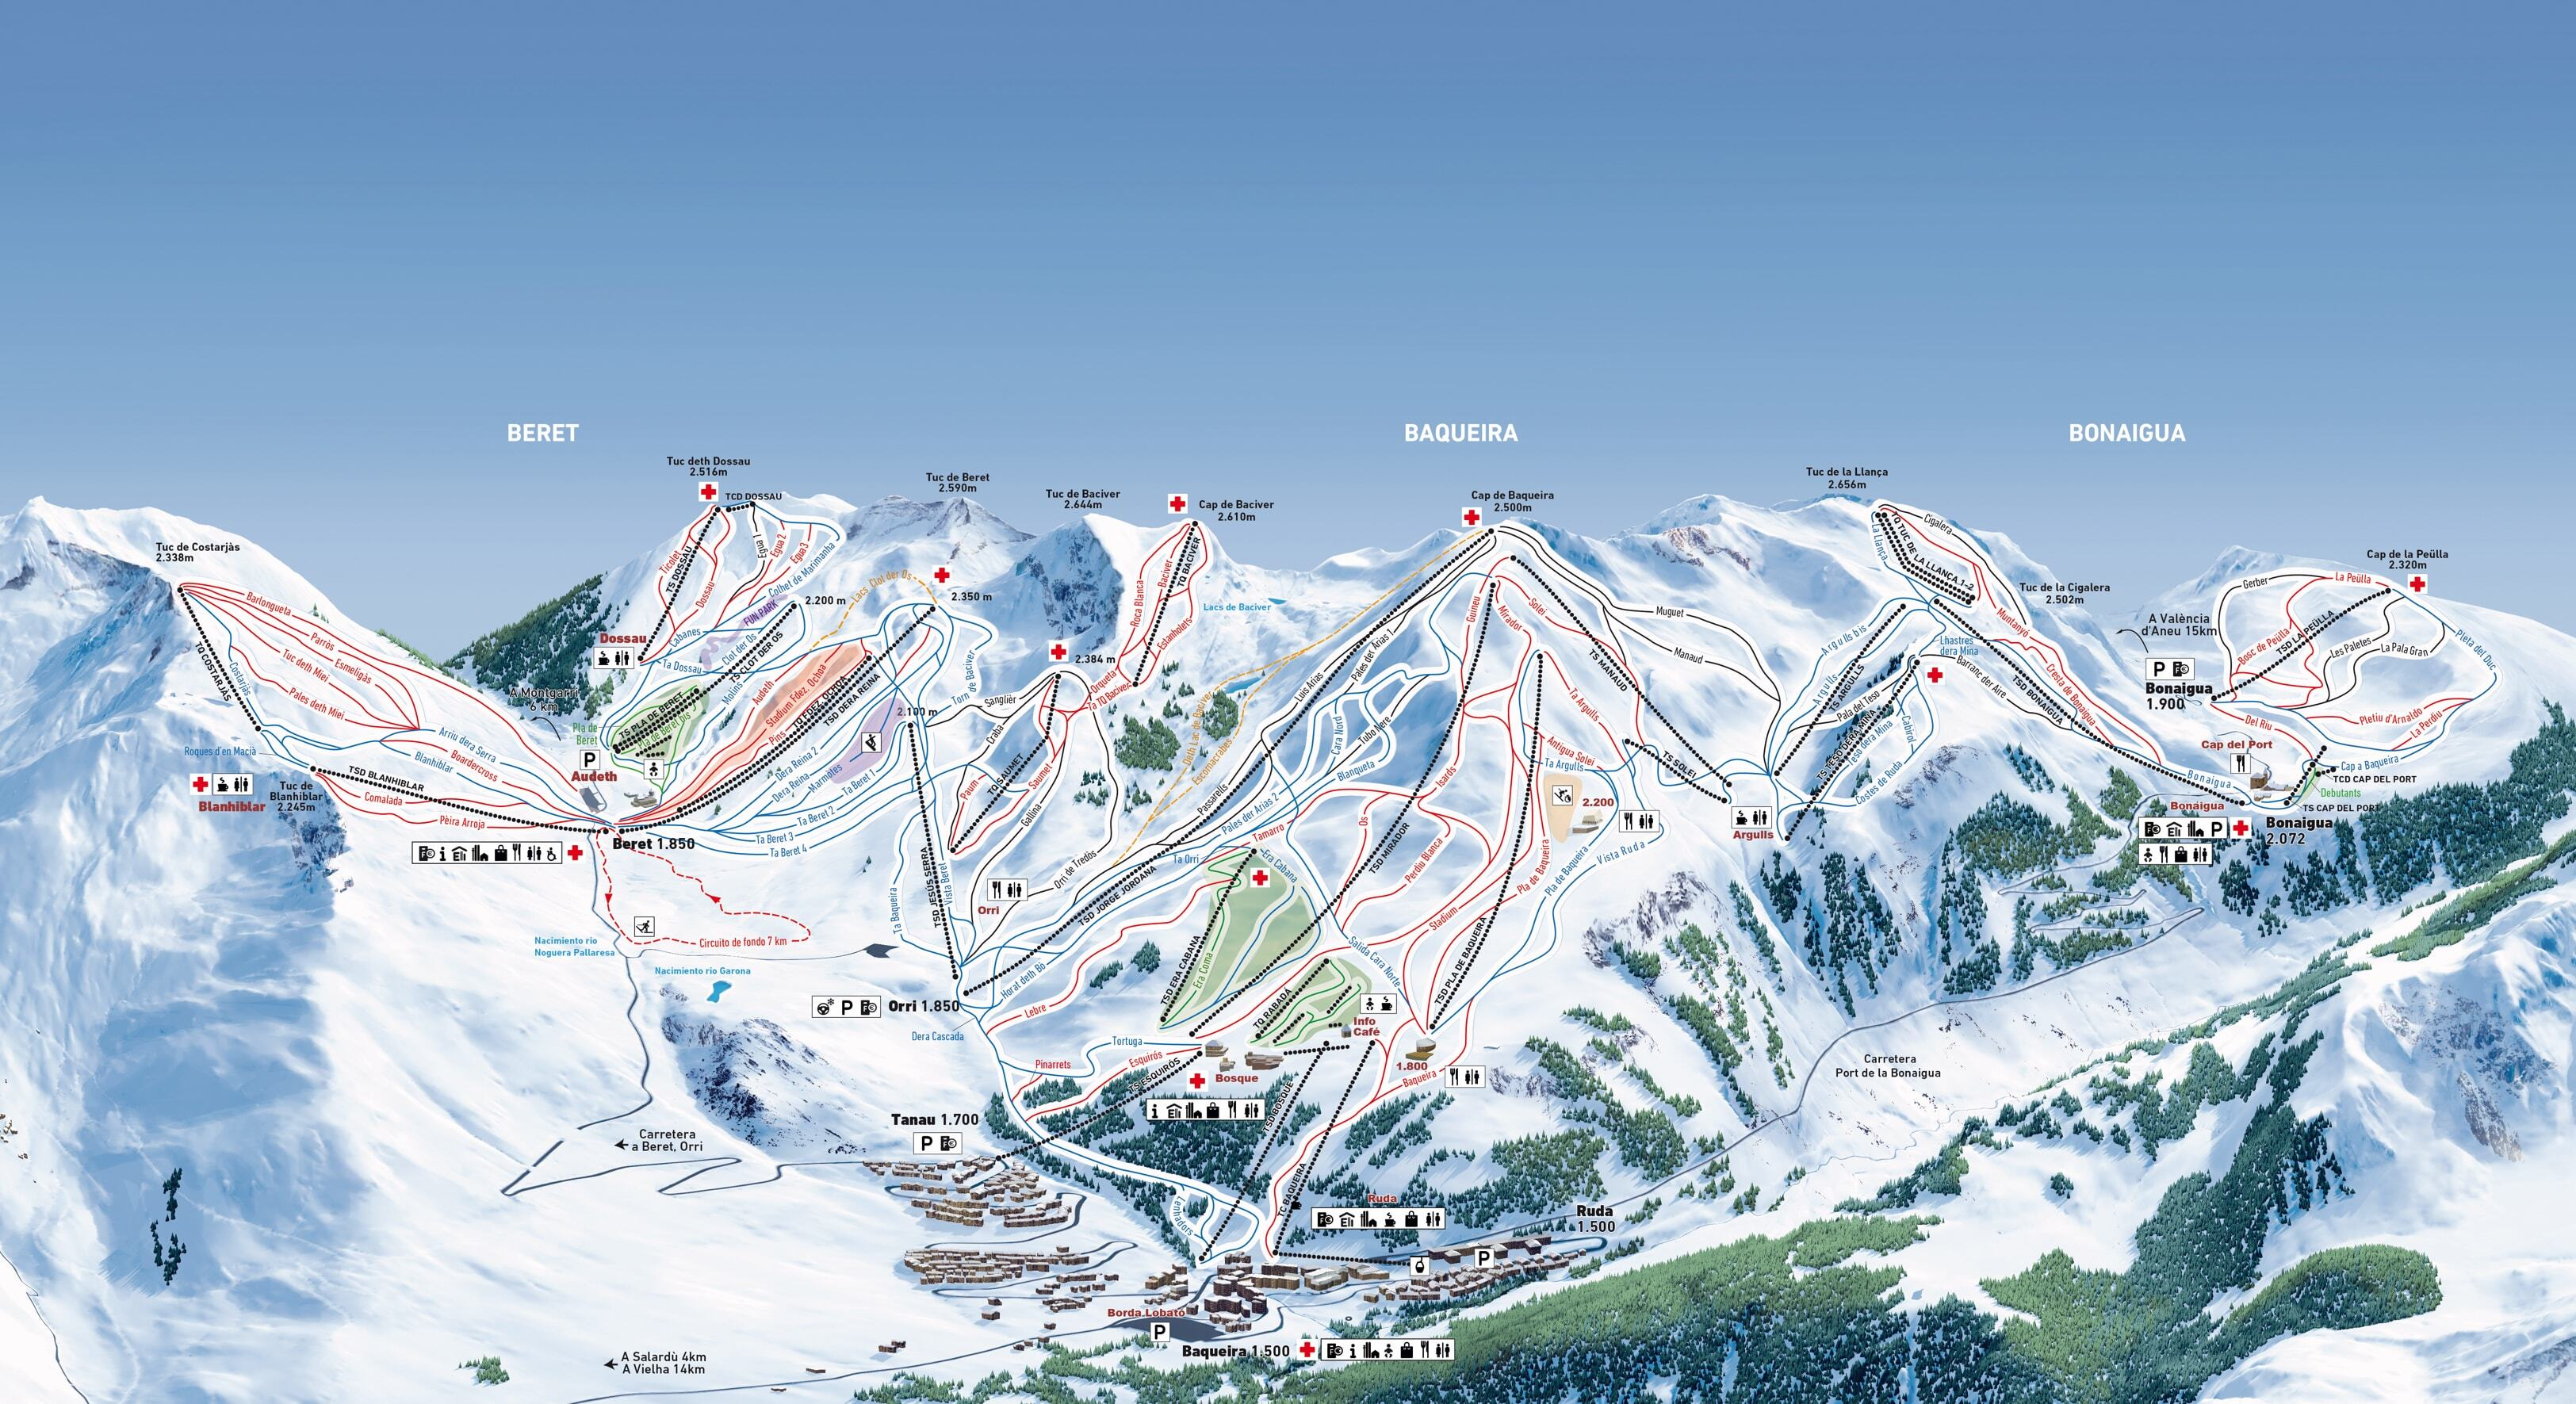 Baqueira/Beret Piste / Trail Map